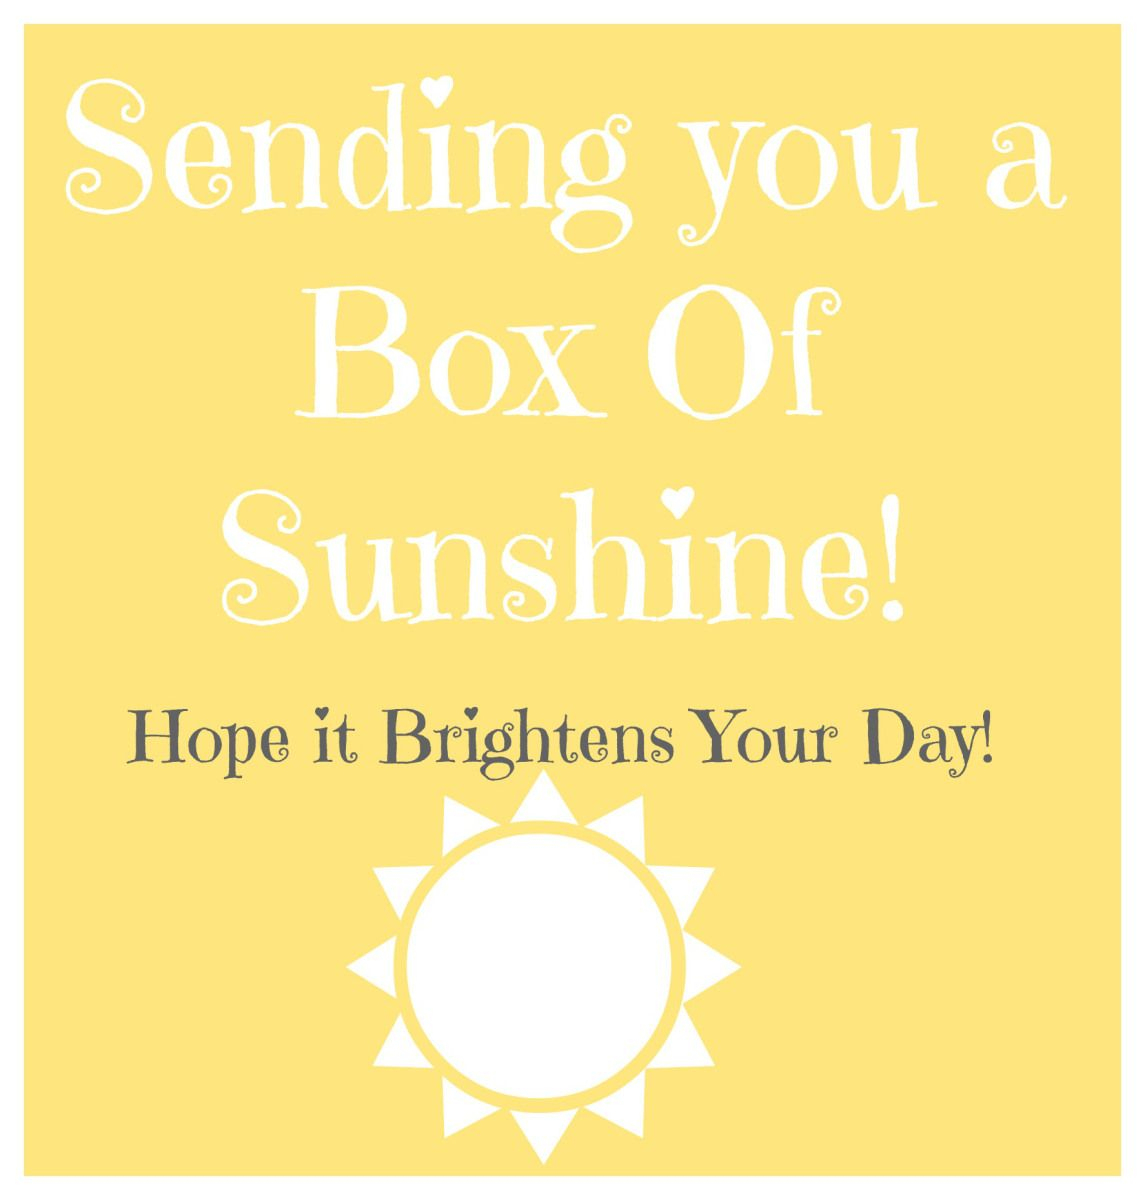 Box Of Sunshine // Free Printable // Rae Of Sparkles | Gift Ideas - Box Of Sunshine Free Printable